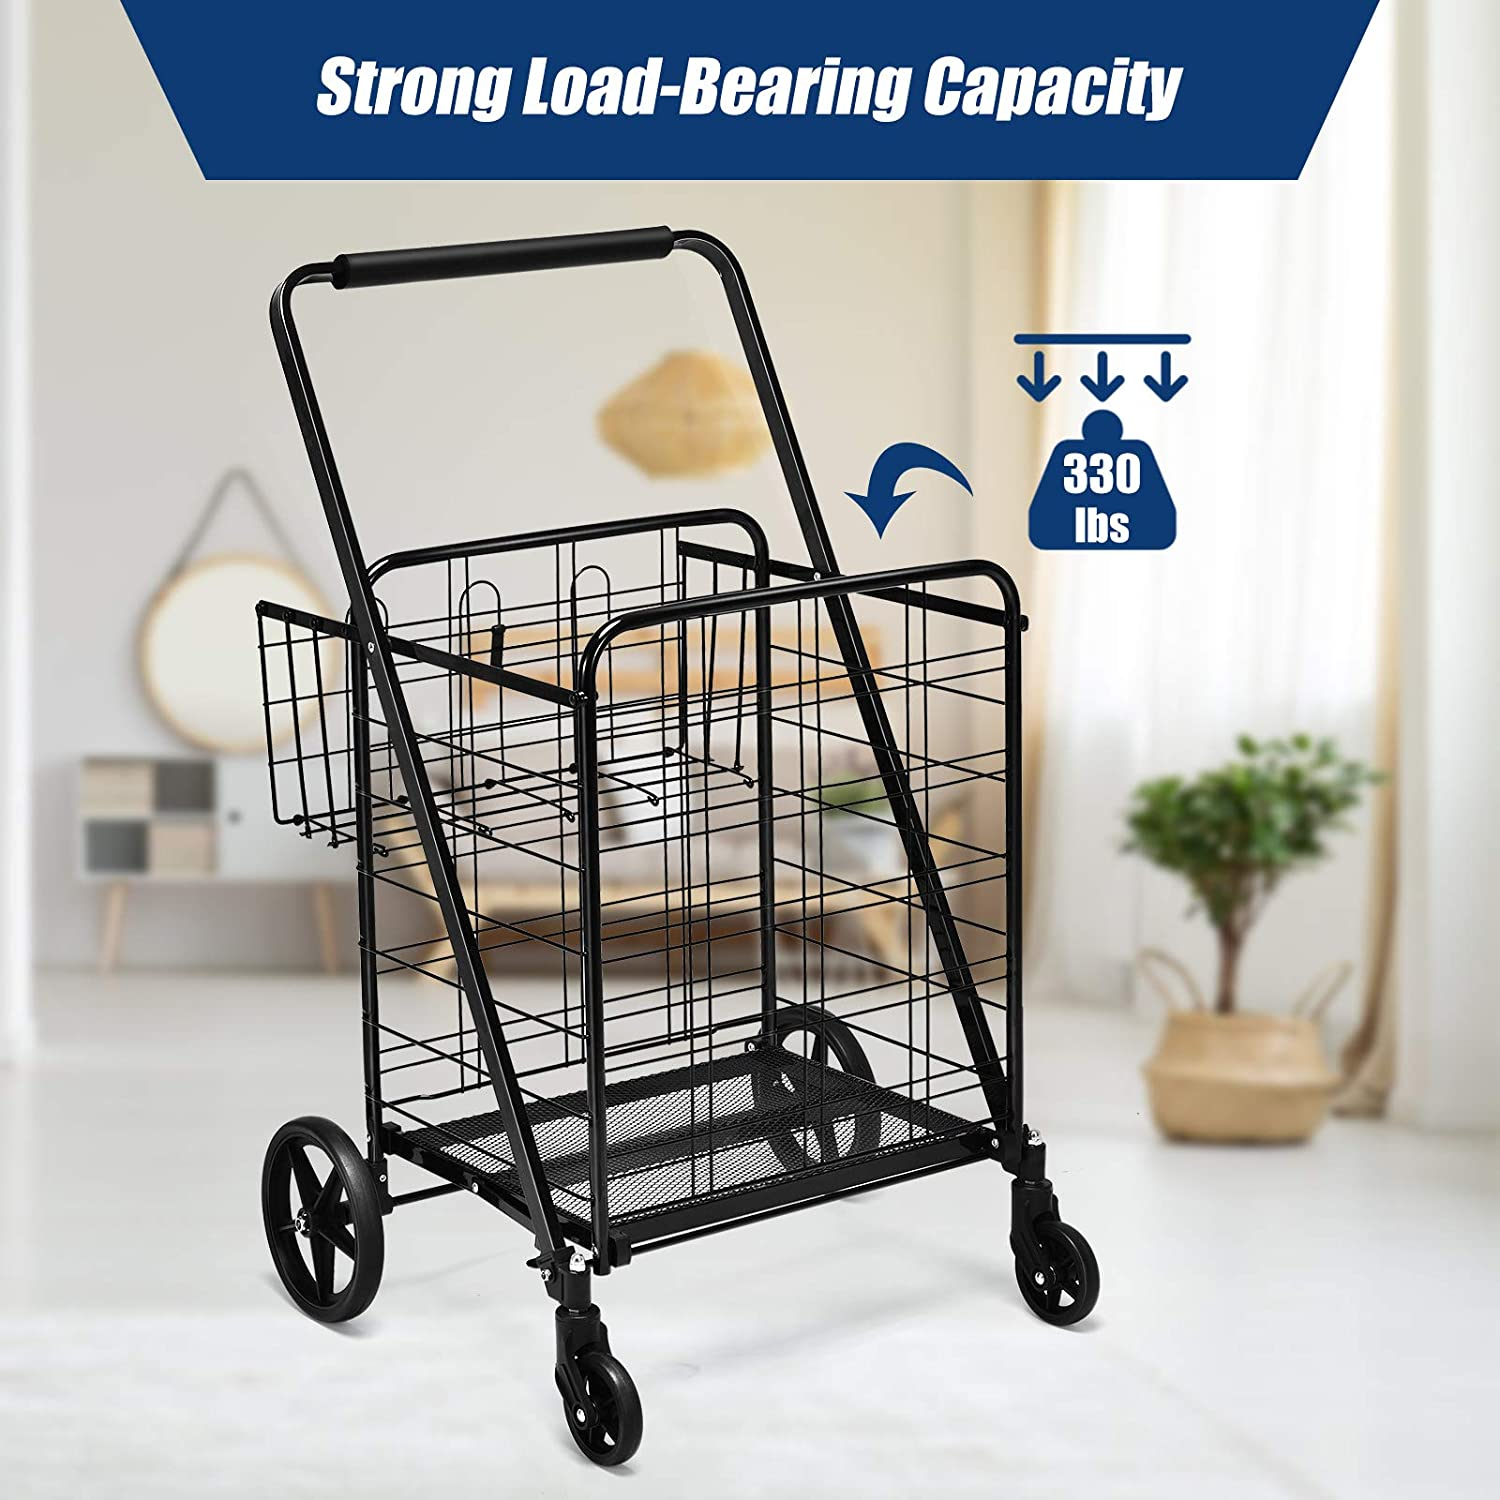 Jumbo Double Basket Utility Grocery Cart 330lbs Capacity with 360/° Rolling Swivel Wheels,Portable Heavy Duty Cart for Laundry Shopping Grocery Silver Goplus Folding Shopping Cart